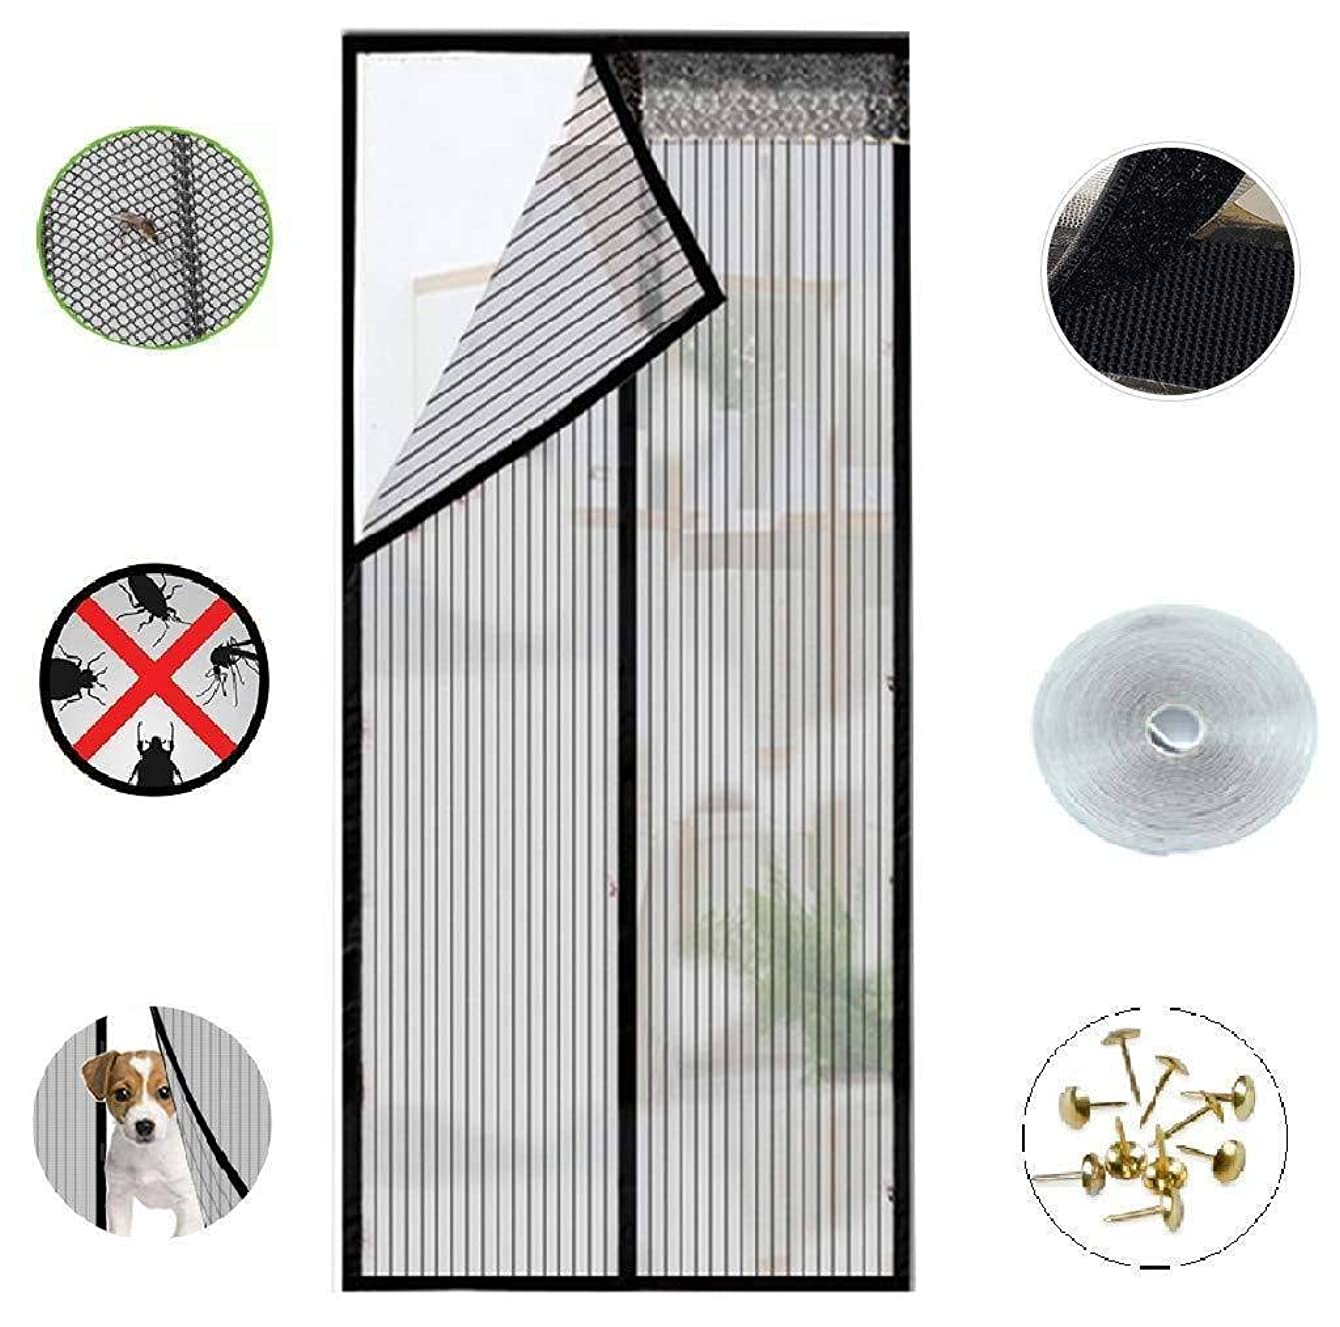 Magnetic Screen Doors New 2018 Patent Pending Design Full Frame Velcro and Fiberglass Mesh Polyester This Instantly Retractable Bug Screen. (Fits Doors up to 36 x 82-inch) fdhhgmhgm